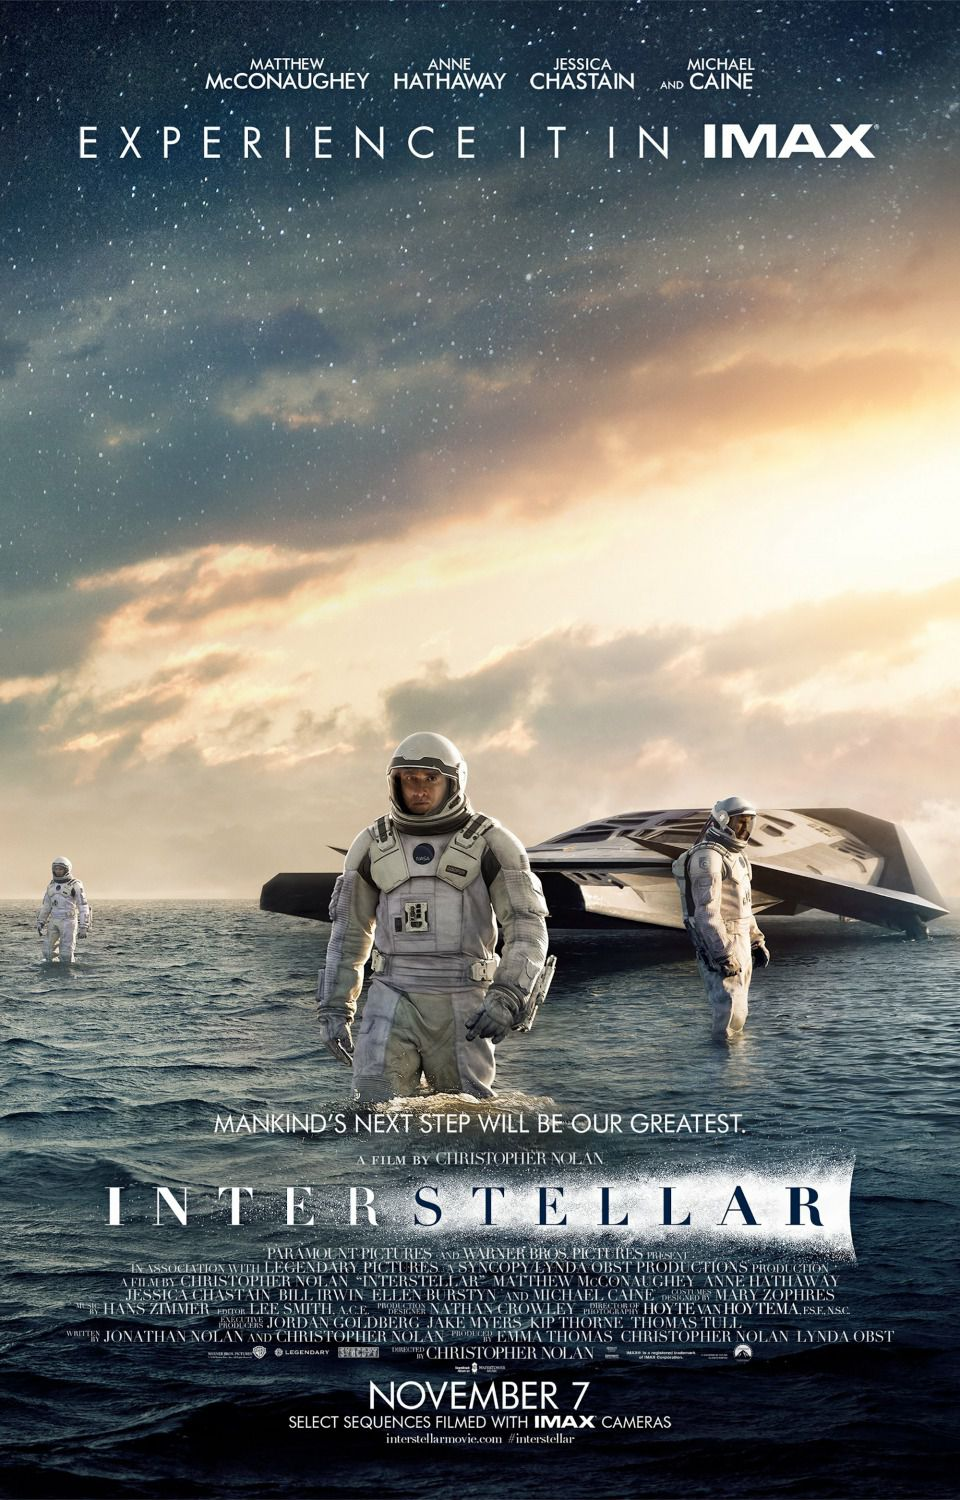 Interstellar - poster - planet landing